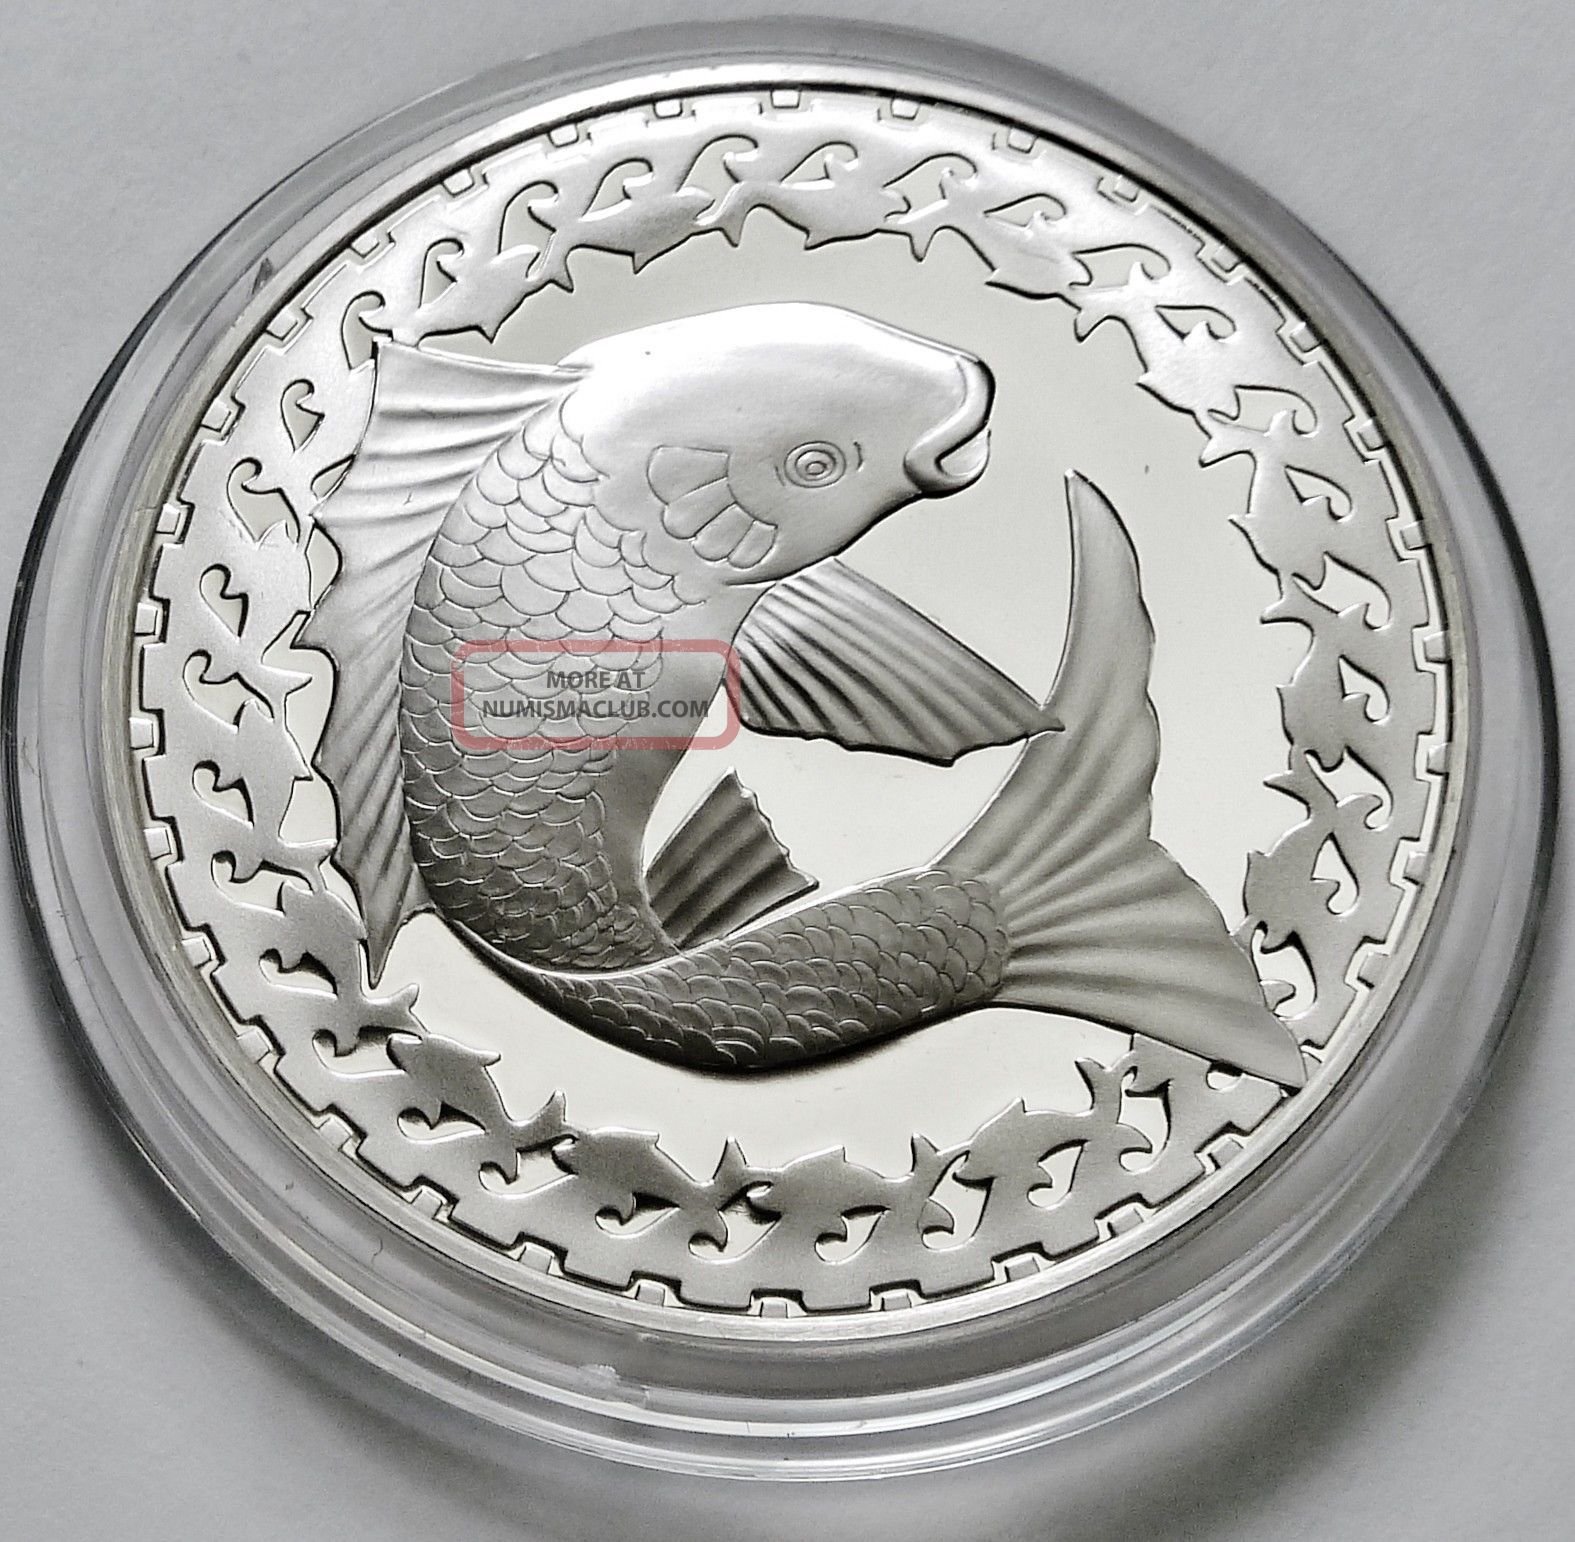 Fish Good Luck Symbol Good Fortune Sterling Silver Coin